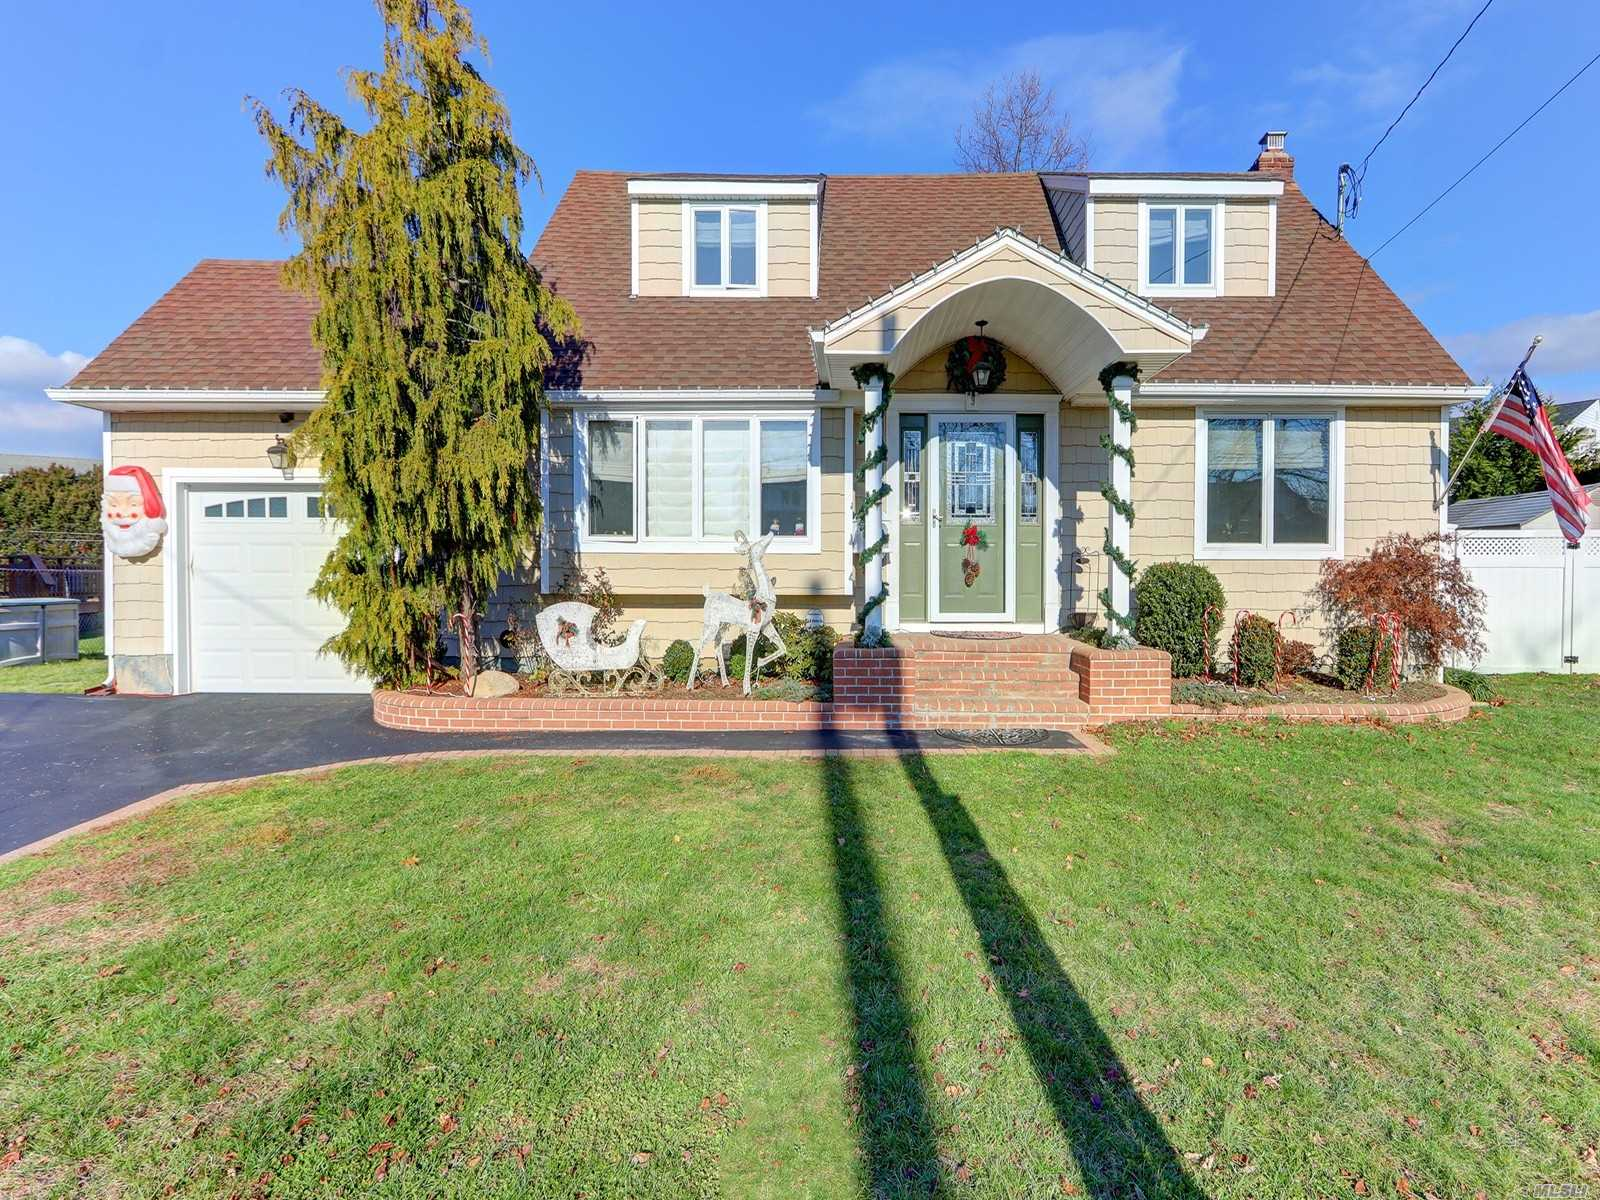 Expanded Mint Cape With Amazing Over Sized Property In Sd#23!!! Kitchen Is 4 Years Young And Has Radiant Heat. Cherry Cabinets , Ss Appliances, Granite And A New Slider To Yard. Mostly New Andersen Windows. Crown Moldings, New Doors, Hi-Hats. Washer/ Dryer Is Upstairs On Bedroom Level. Vent Less A/C On Main Level And 2 Ac's Upstairs. New Front Door, Roof Approx. 8 Years. 200 Amp Service. Gas Heating System Approx Ten Years. Over Sized Garage. Bsmt. Ready To Be Finished. Huge Fenced Property!